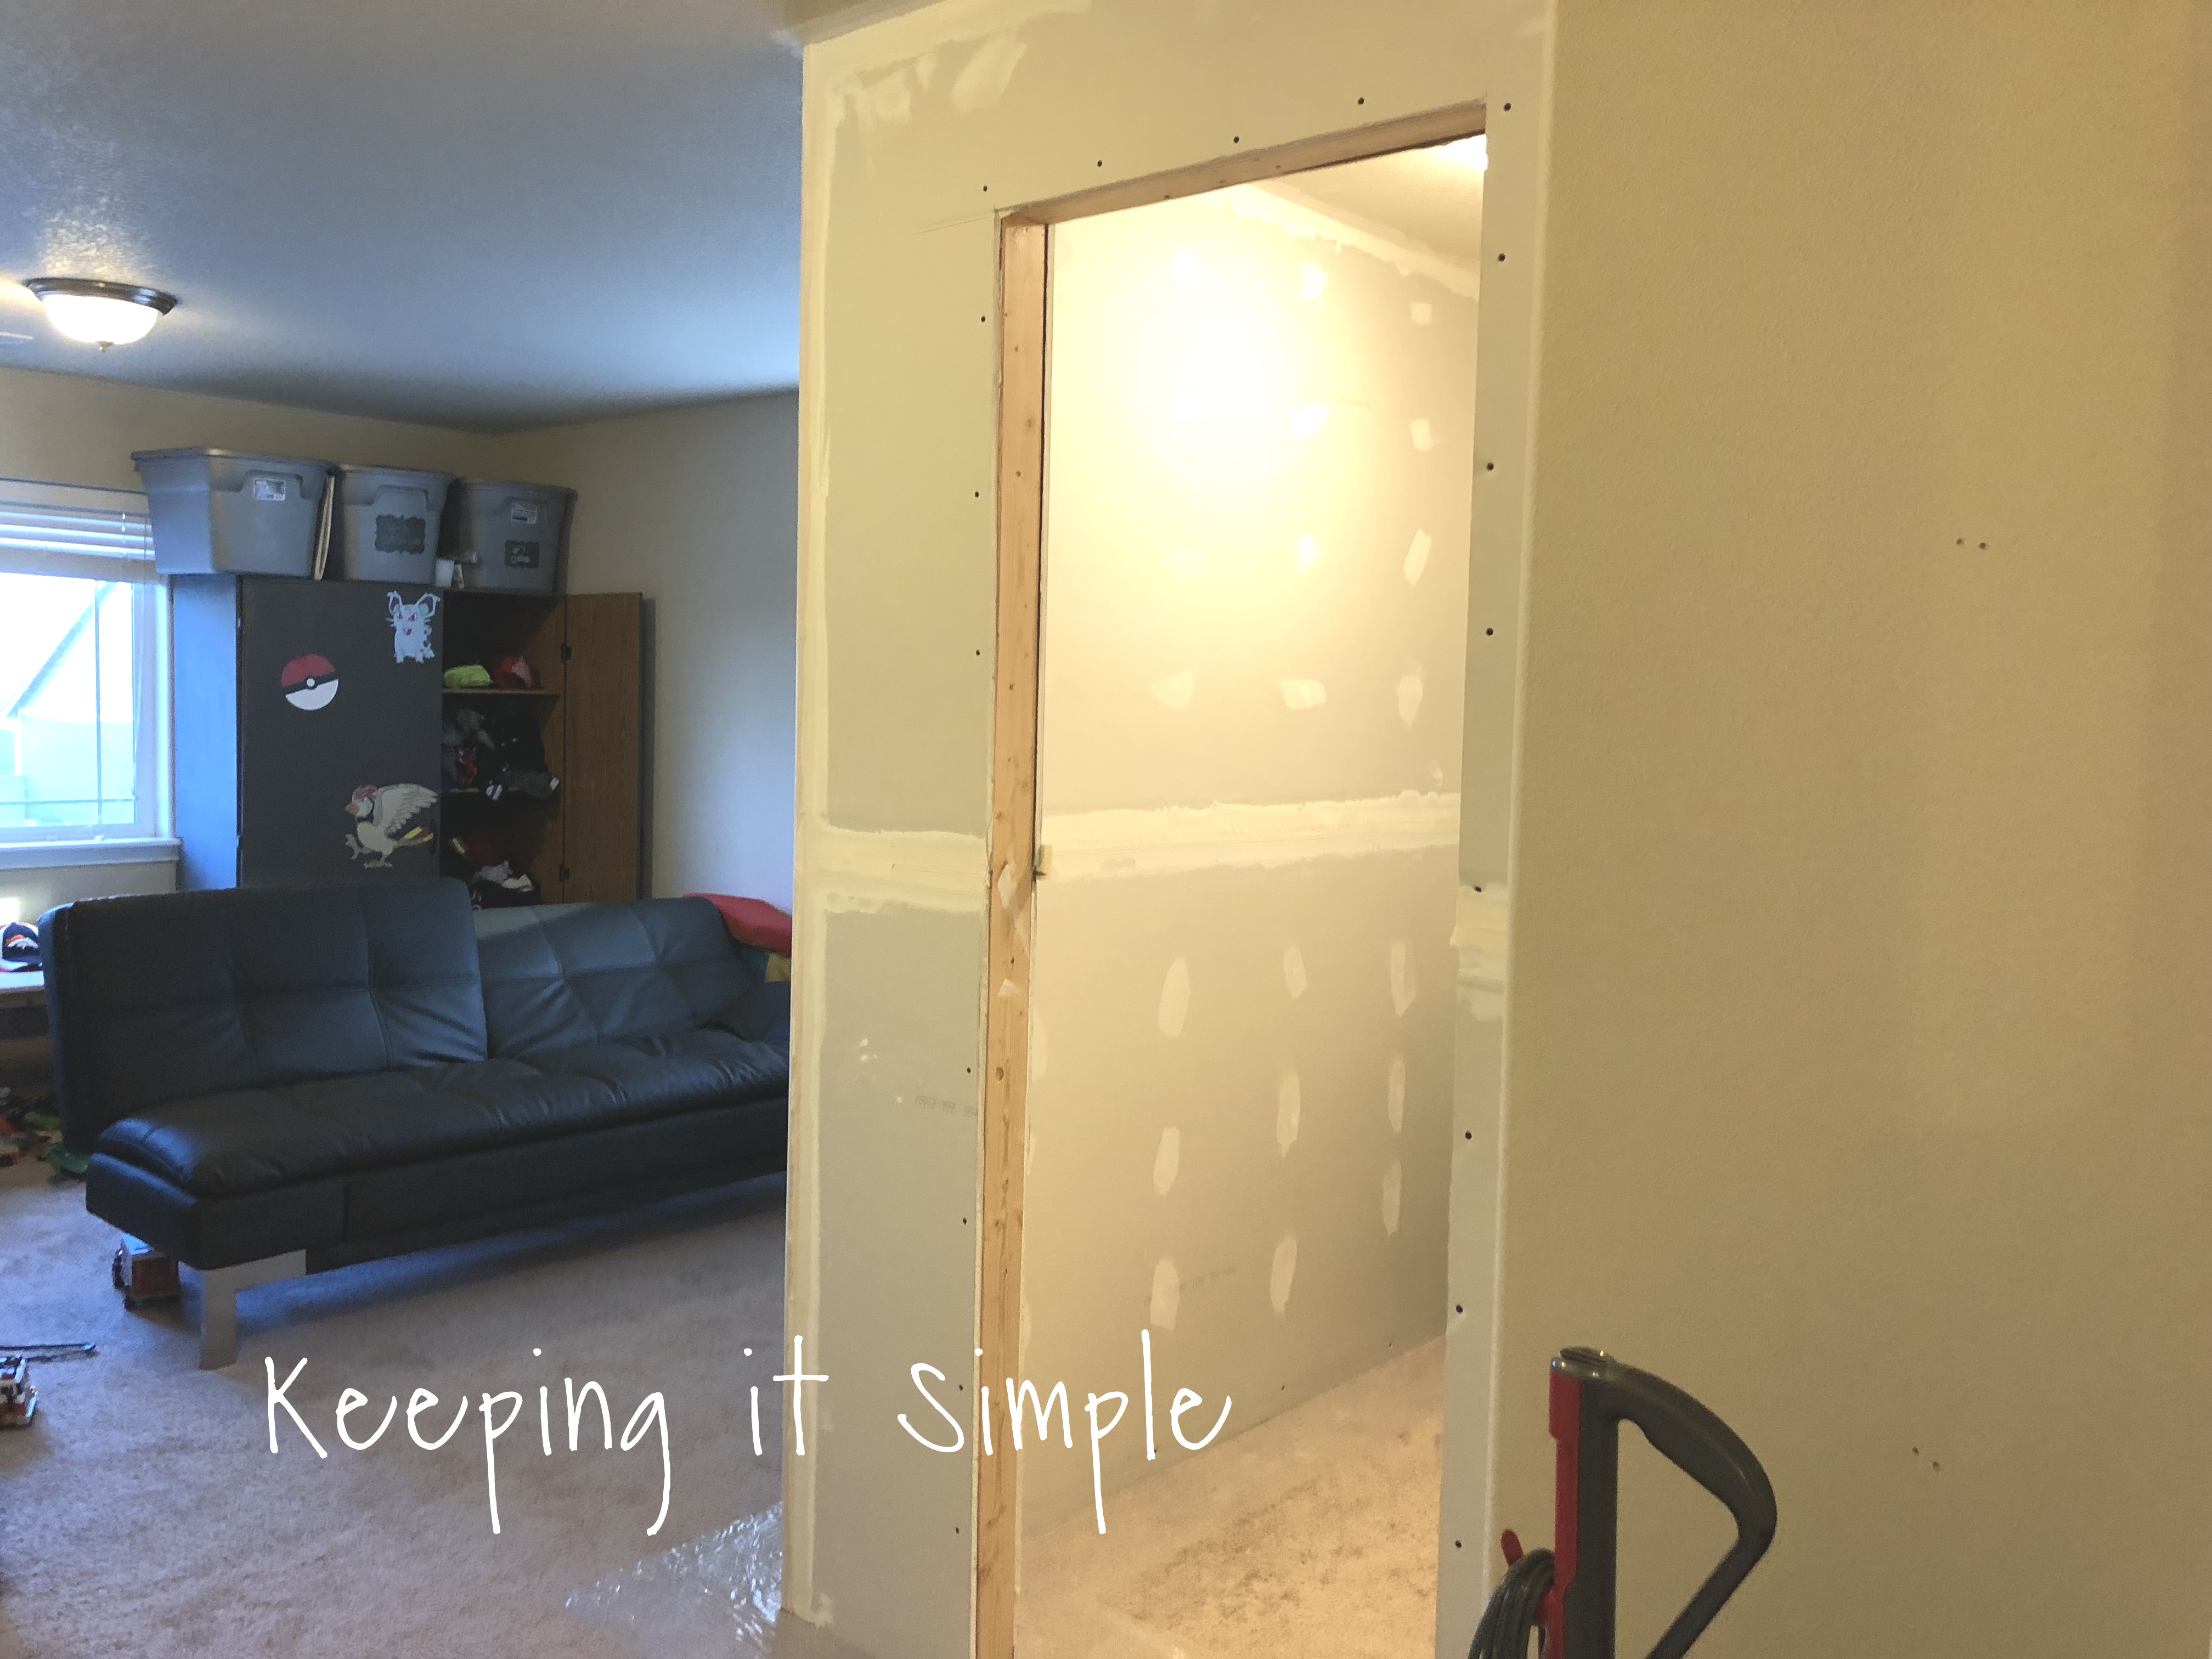 Tips On How To Build A Closet To Make A Bedroom 18 Keeping It Simple